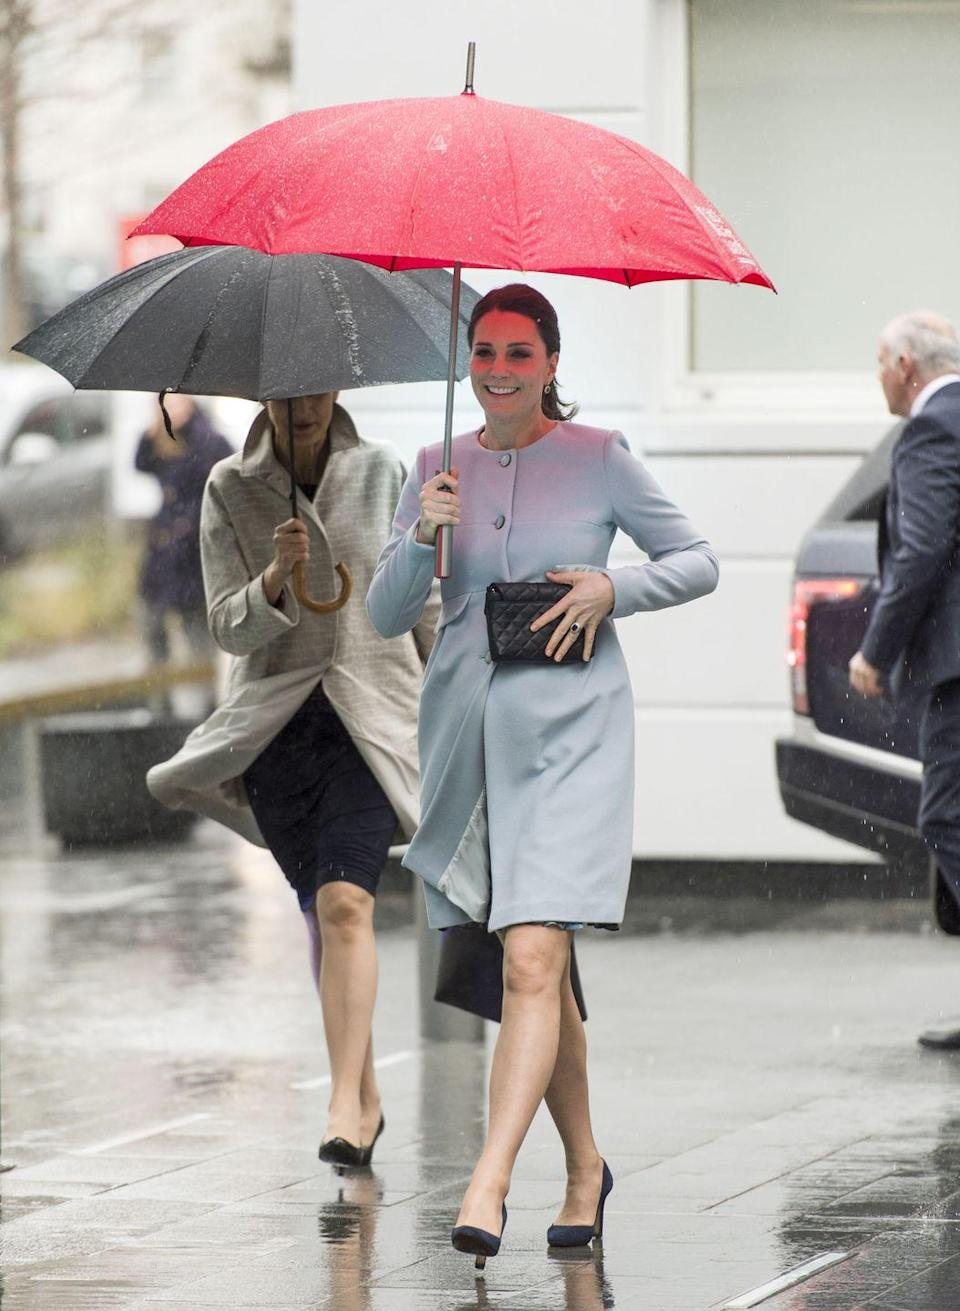 """<p>The Duchess stepped out on a rainy day in London in a pale blue cashmere blend coat <a href=""""https://www.seraphine.com/en-us/natasha-cashmere-blend-coat.html?"""" rel=""""nofollow noopener"""" target=""""_blank"""" data-ylk=""""slk:by Seraphine, which is still on sale for $299."""" class=""""link rapid-noclick-resp"""">by Seraphine, which is still on sale for $299.</a> She accessorized with a black clutch and black heels.</p>"""